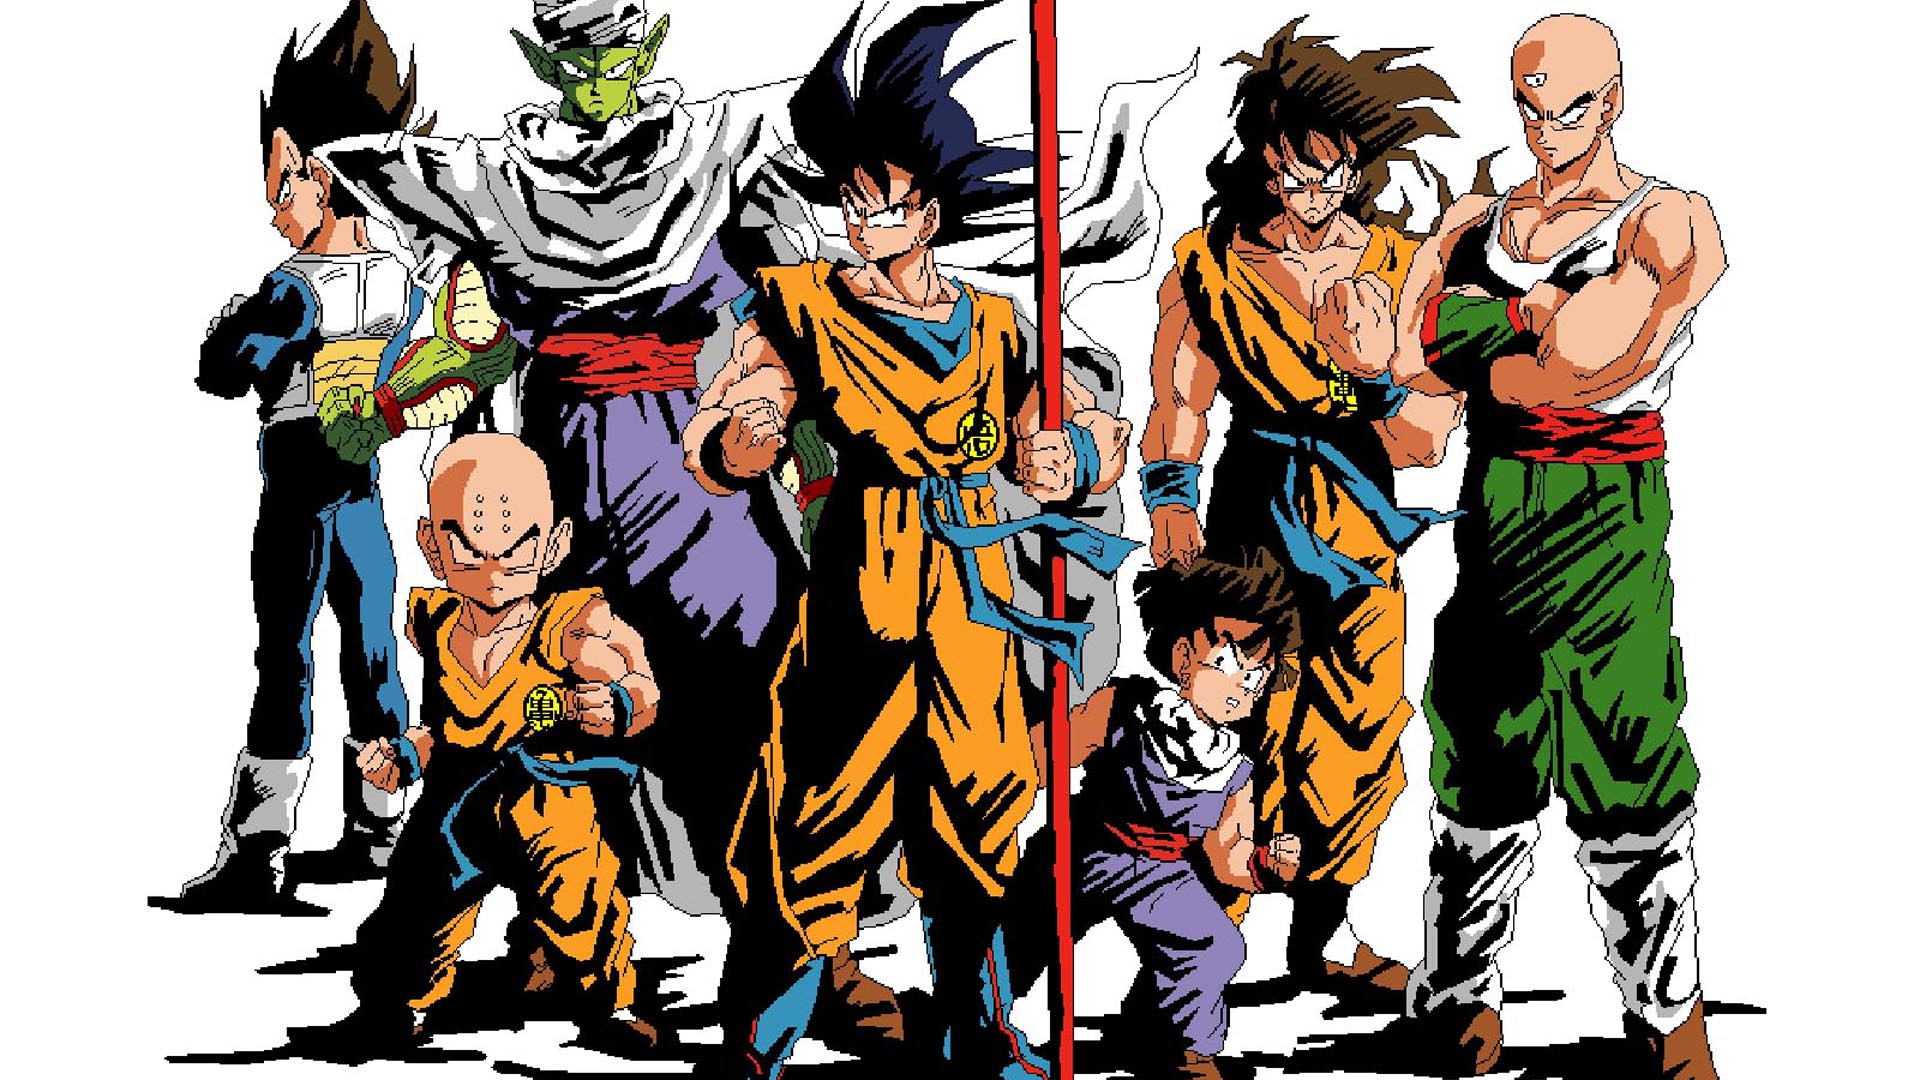 Most Inspiring Wallpaper High Resolution Dragon Ball Z - Dragon-Ball-Wallpaper-High-Resolution  You Should Have_121198.jpg